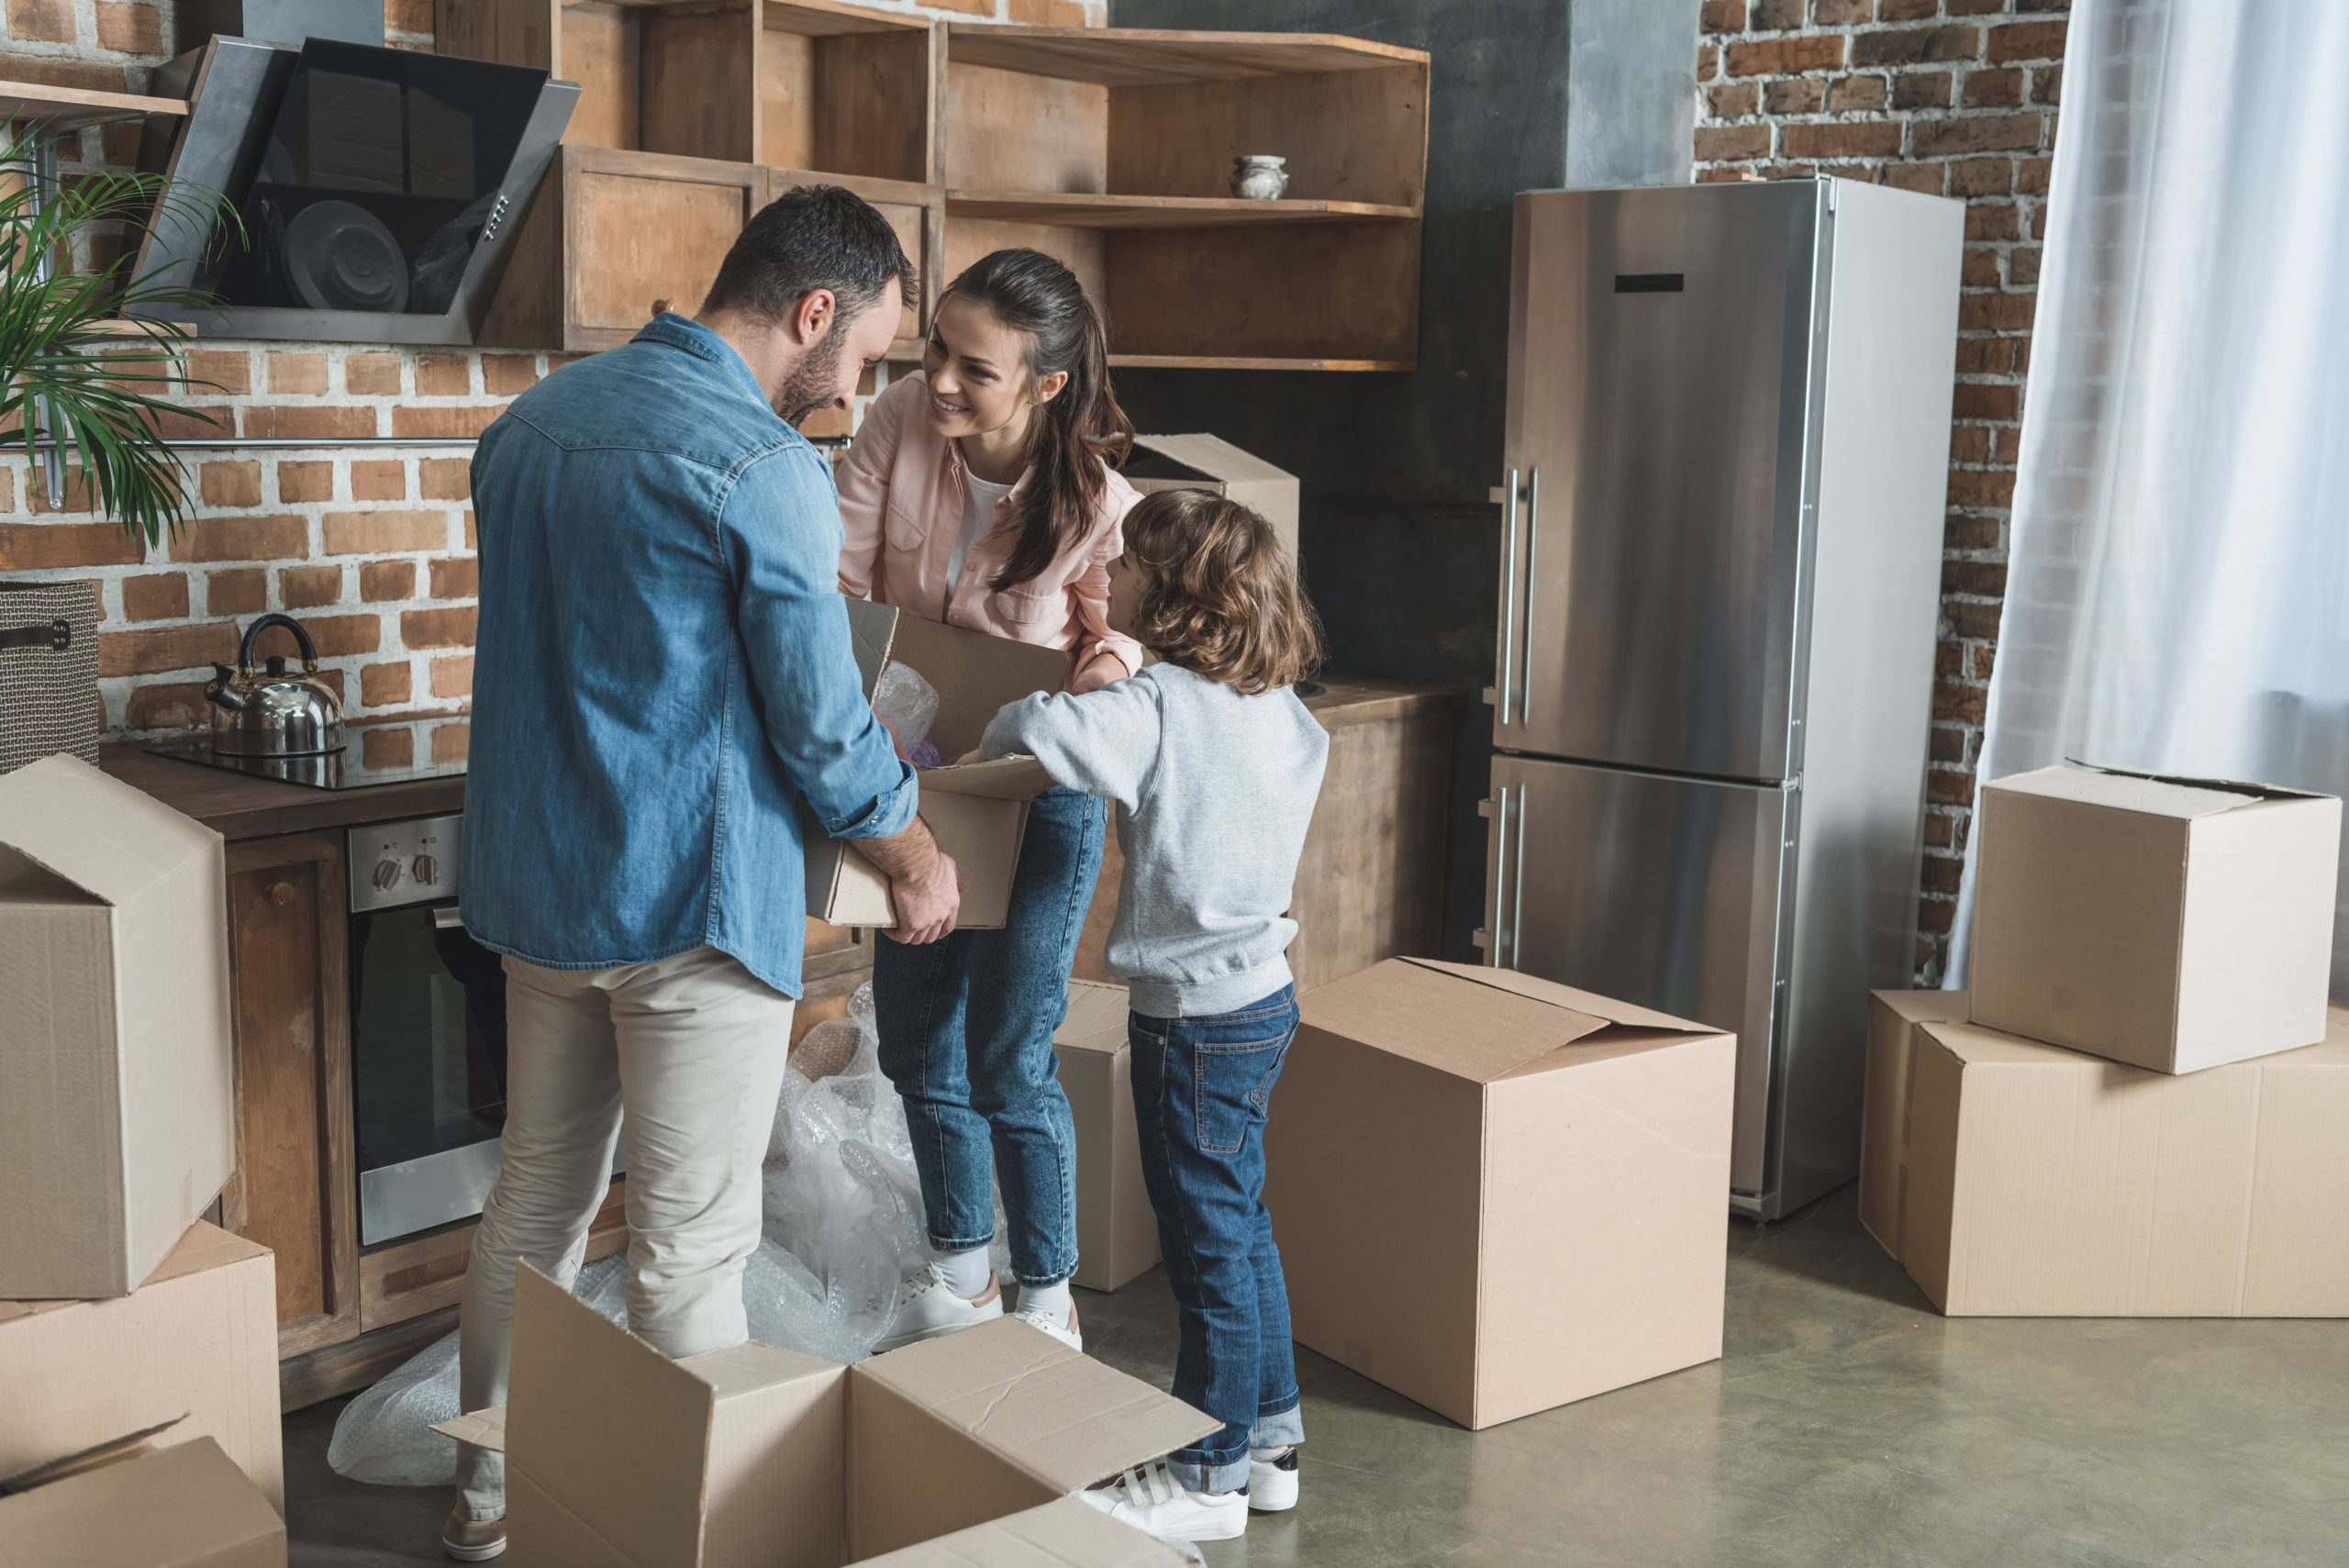 Happy Family Packing Cardboard Boxes While Moving